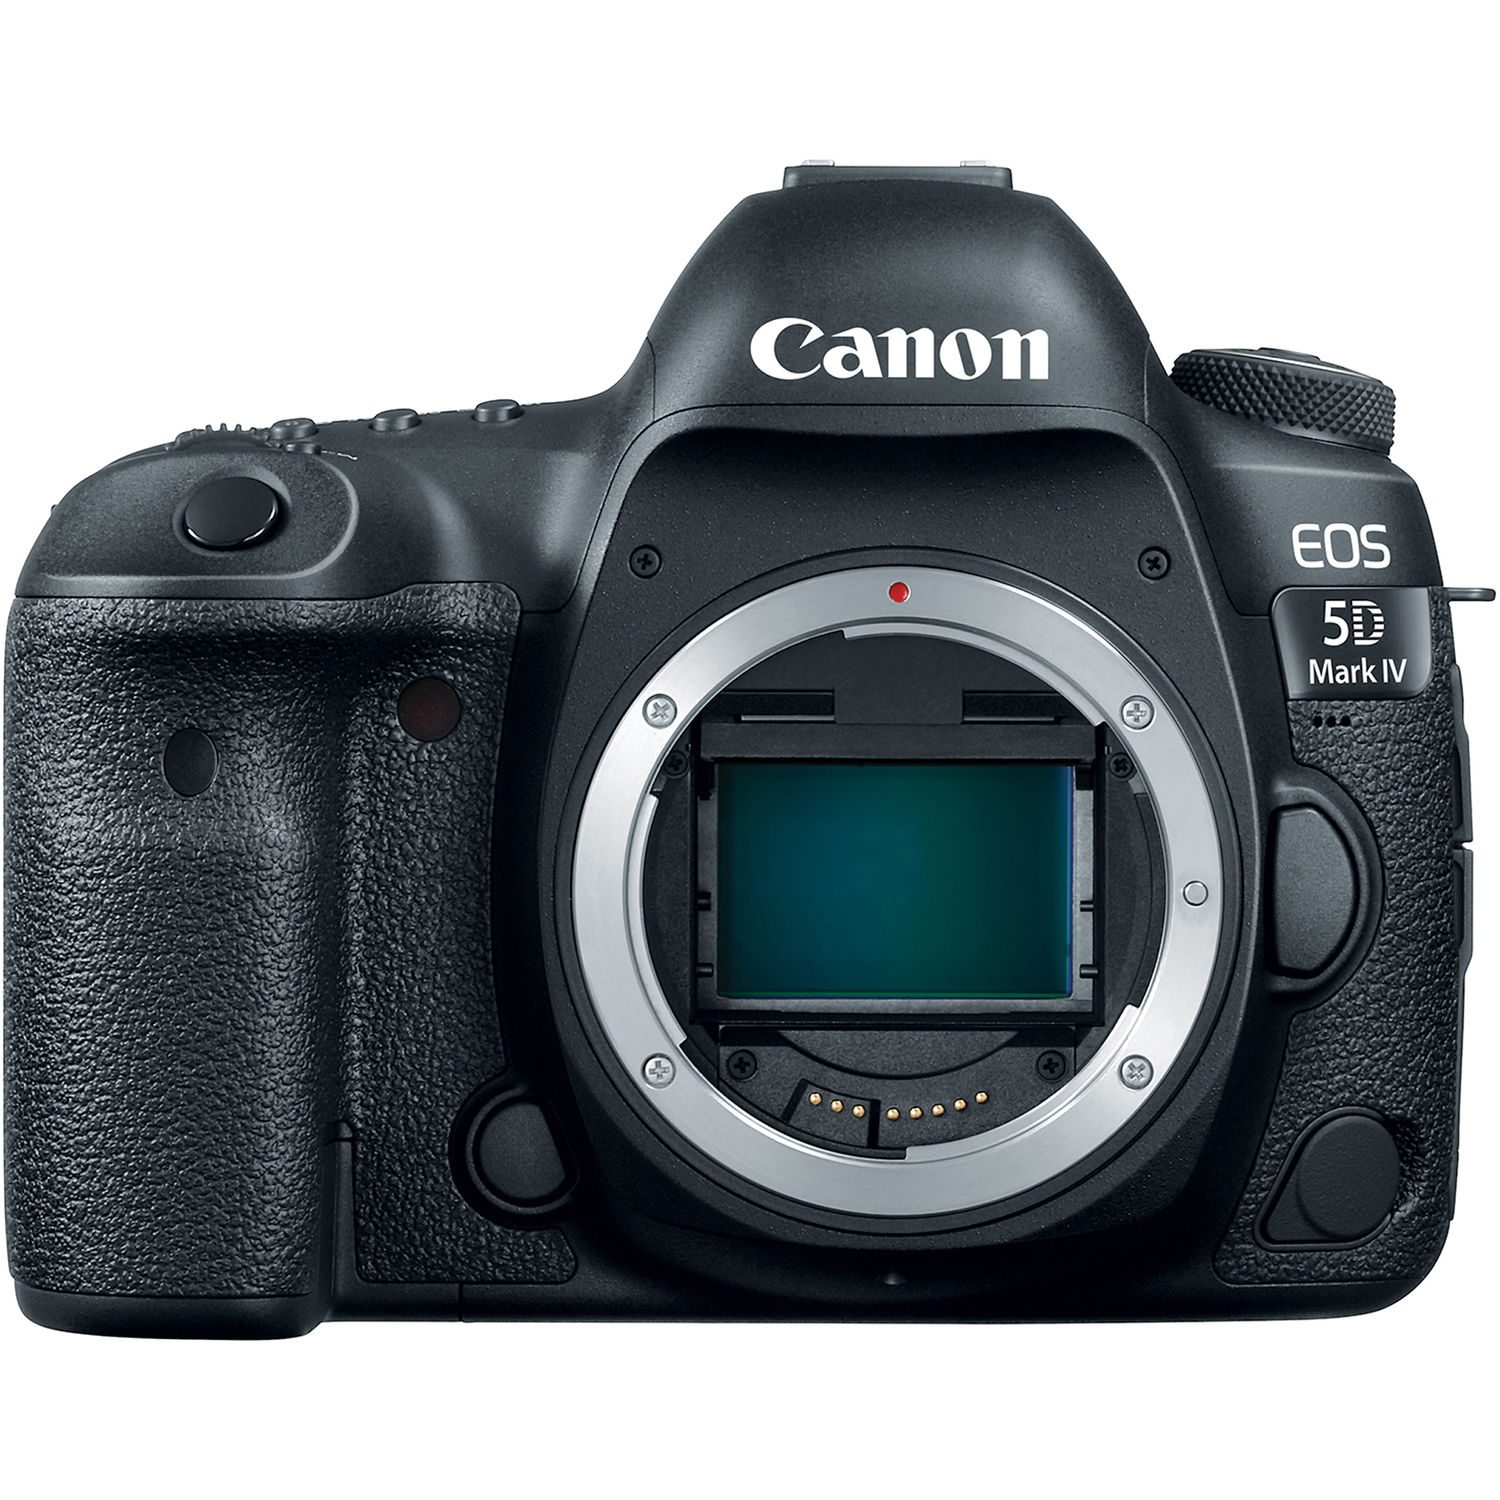 Canon EOS 5D Mark IV DSLR Camera Body Only